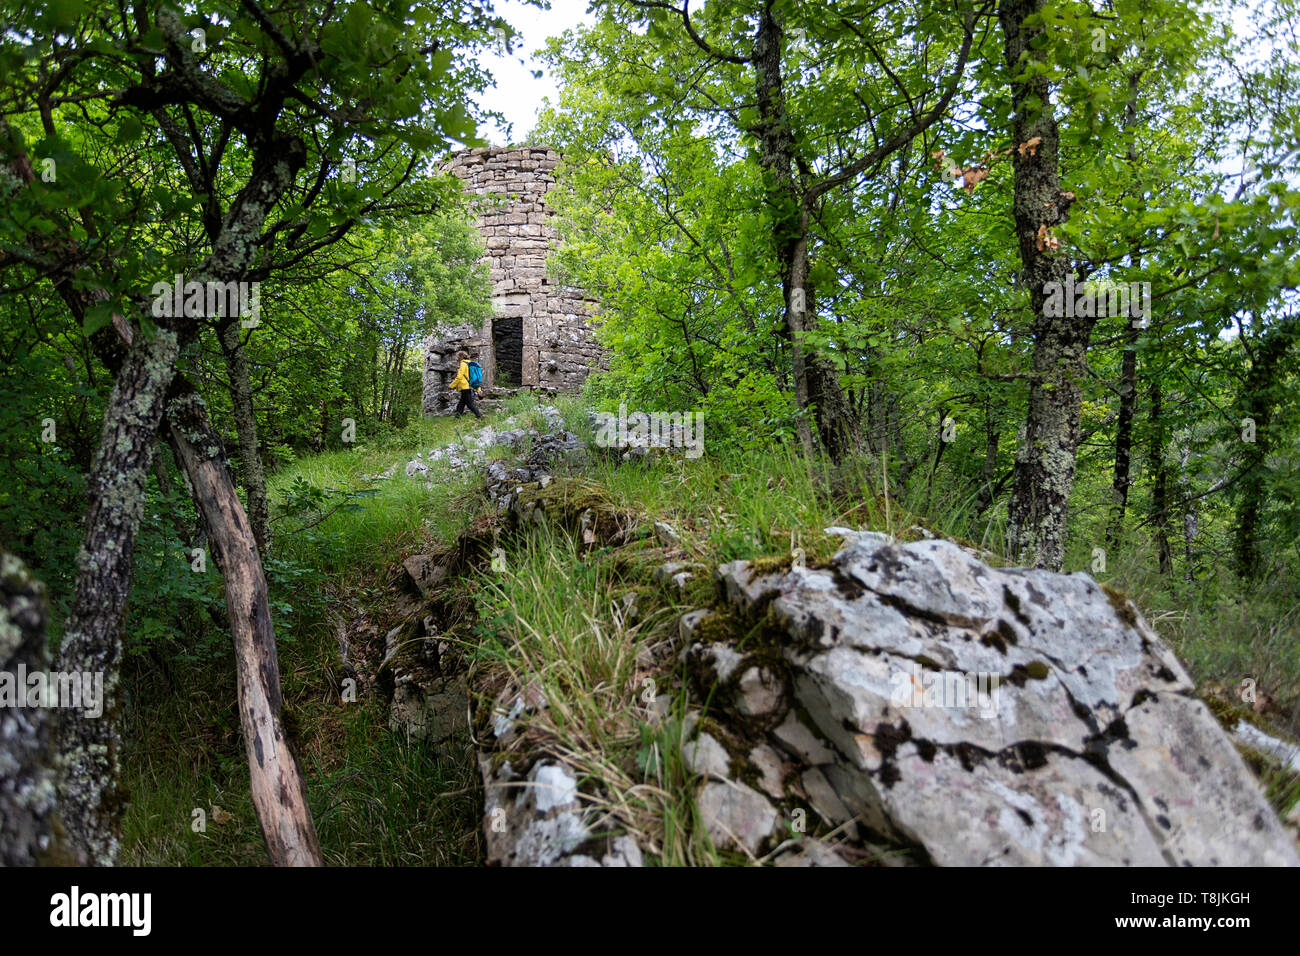 Woman standing by ruins of historic tower in thick green forest. Ruins of old venetian defense stone tower in dense wood. Pasjak, Slovenia - Stock Image